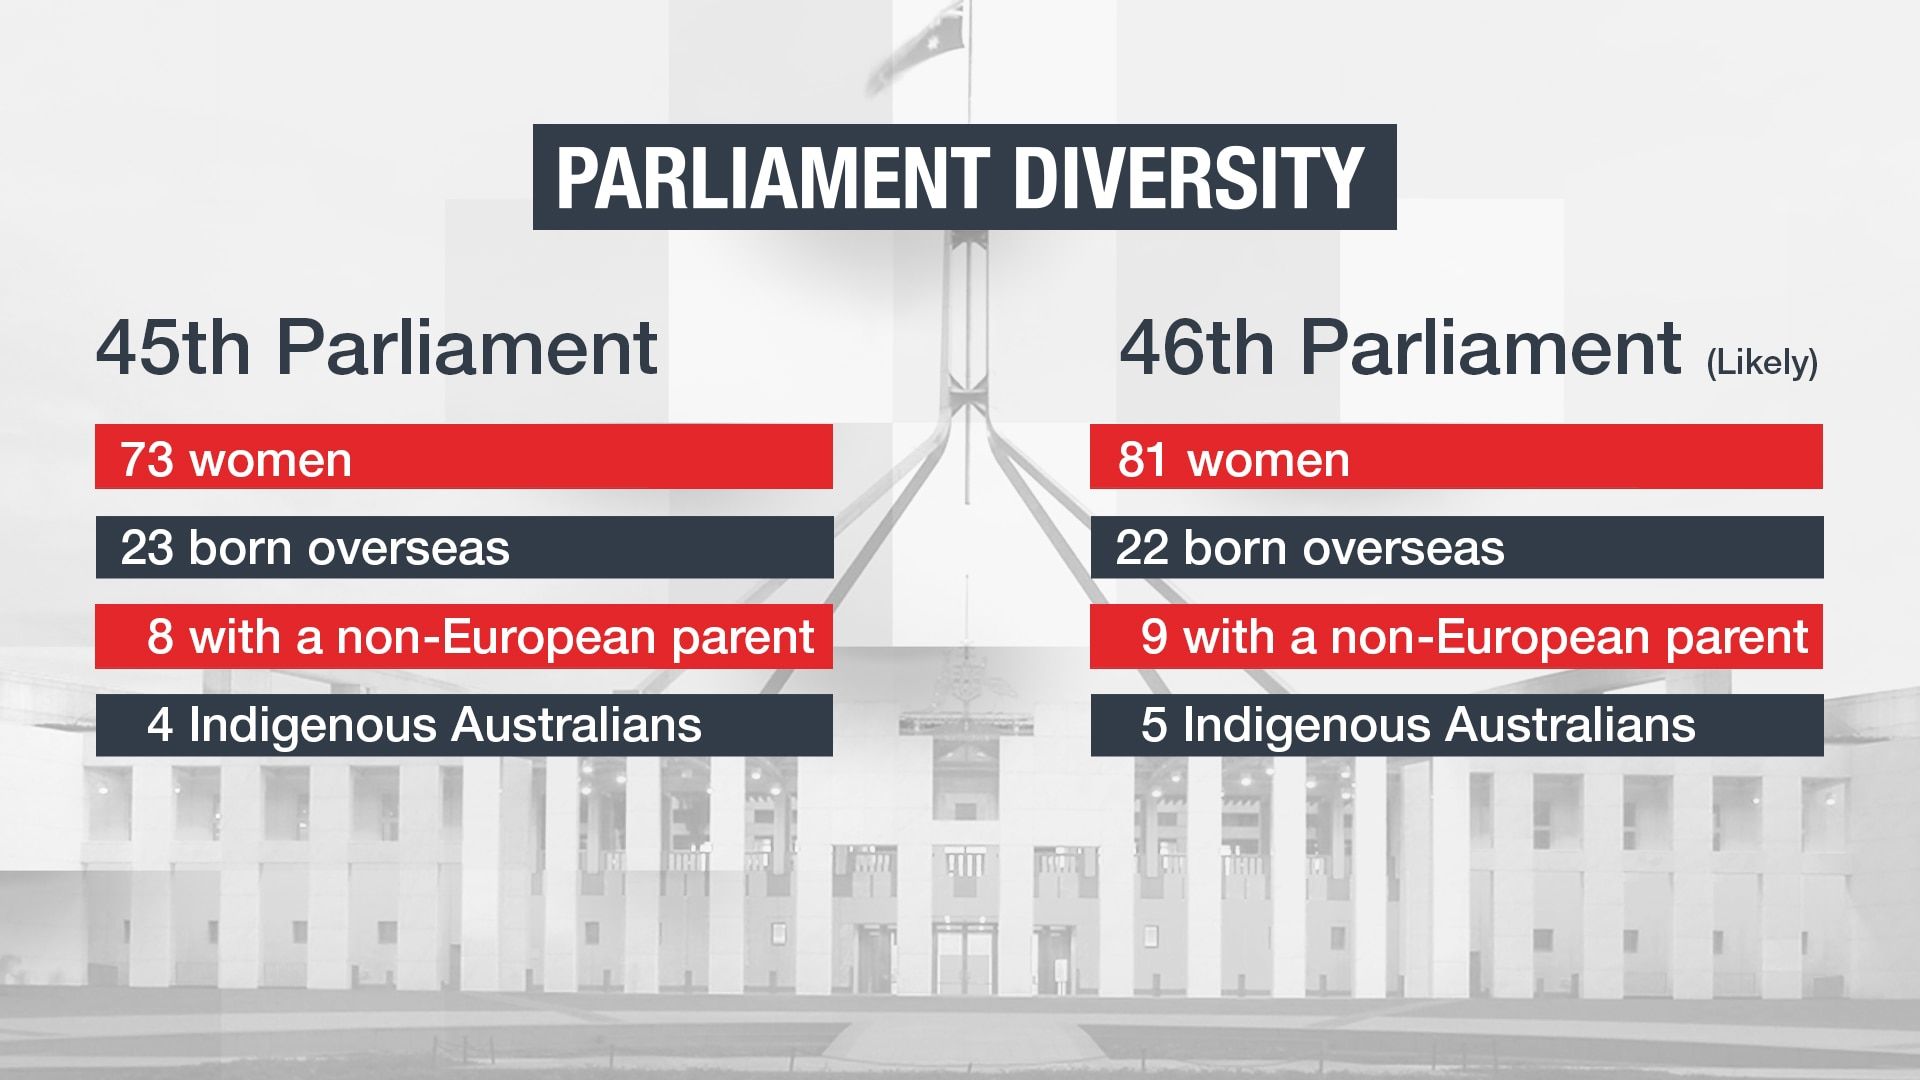 45th Parliament versus the 46th Parliament